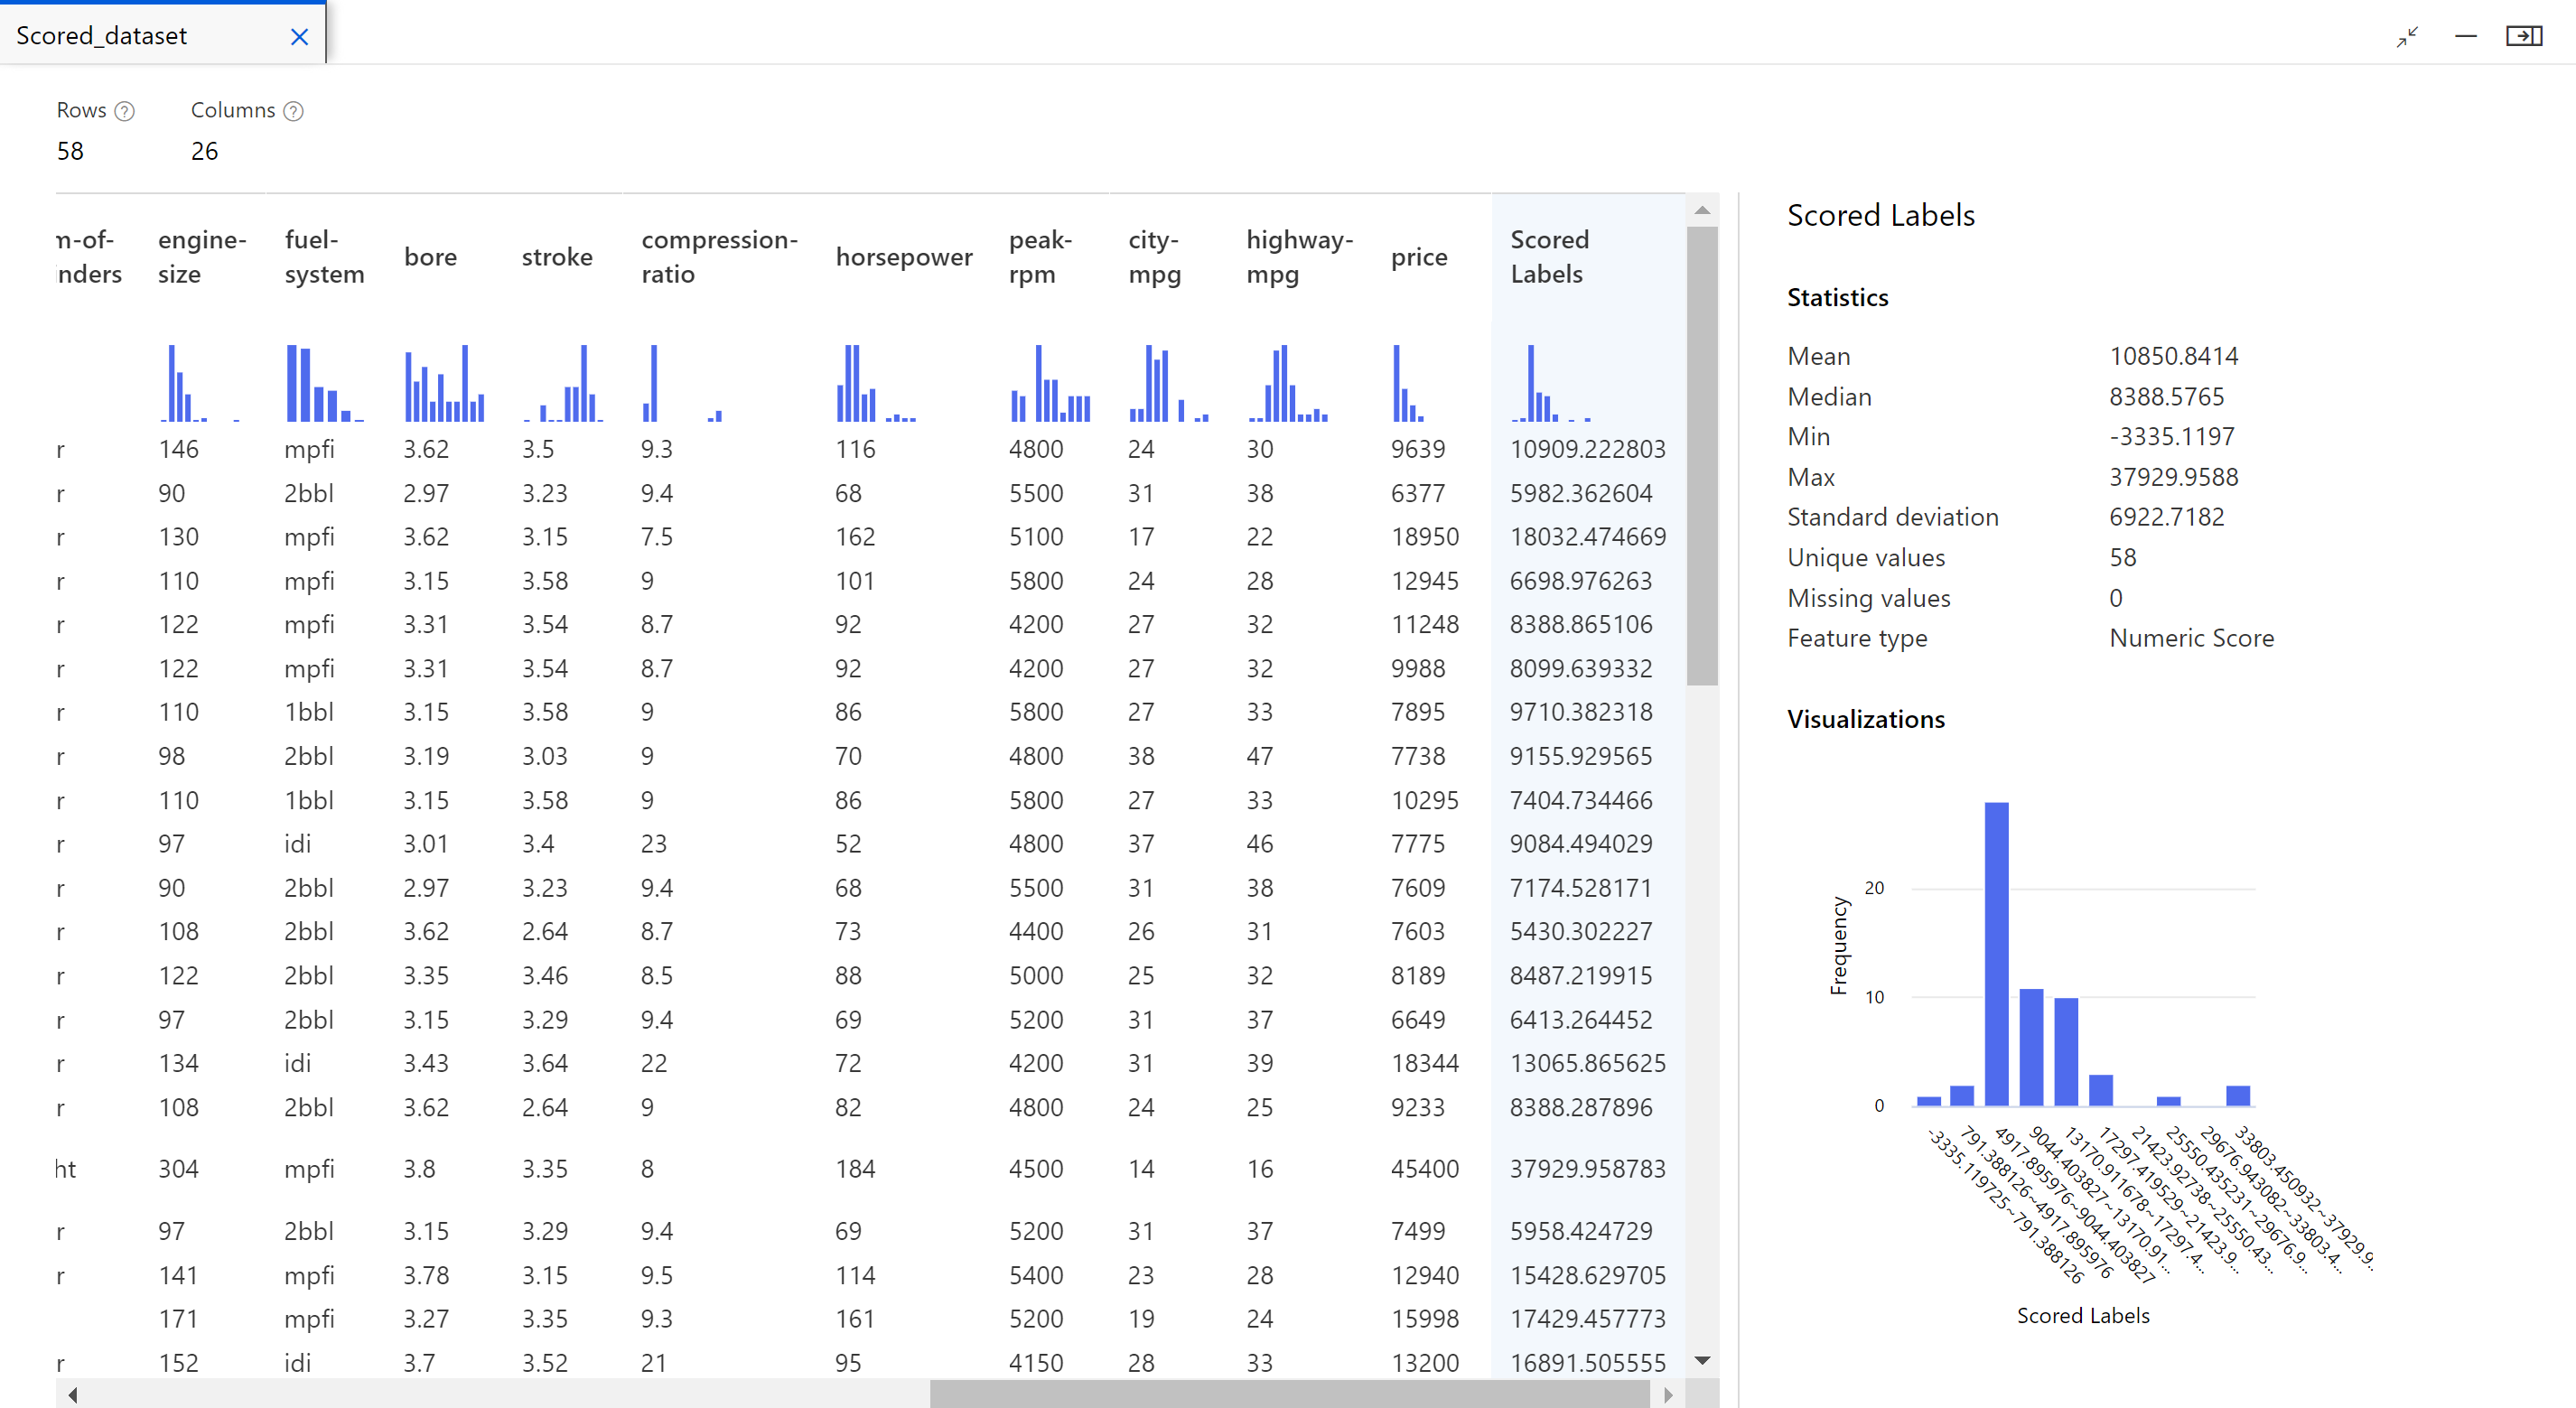 Screenshot of the output visualization highlighting the Scored Label column